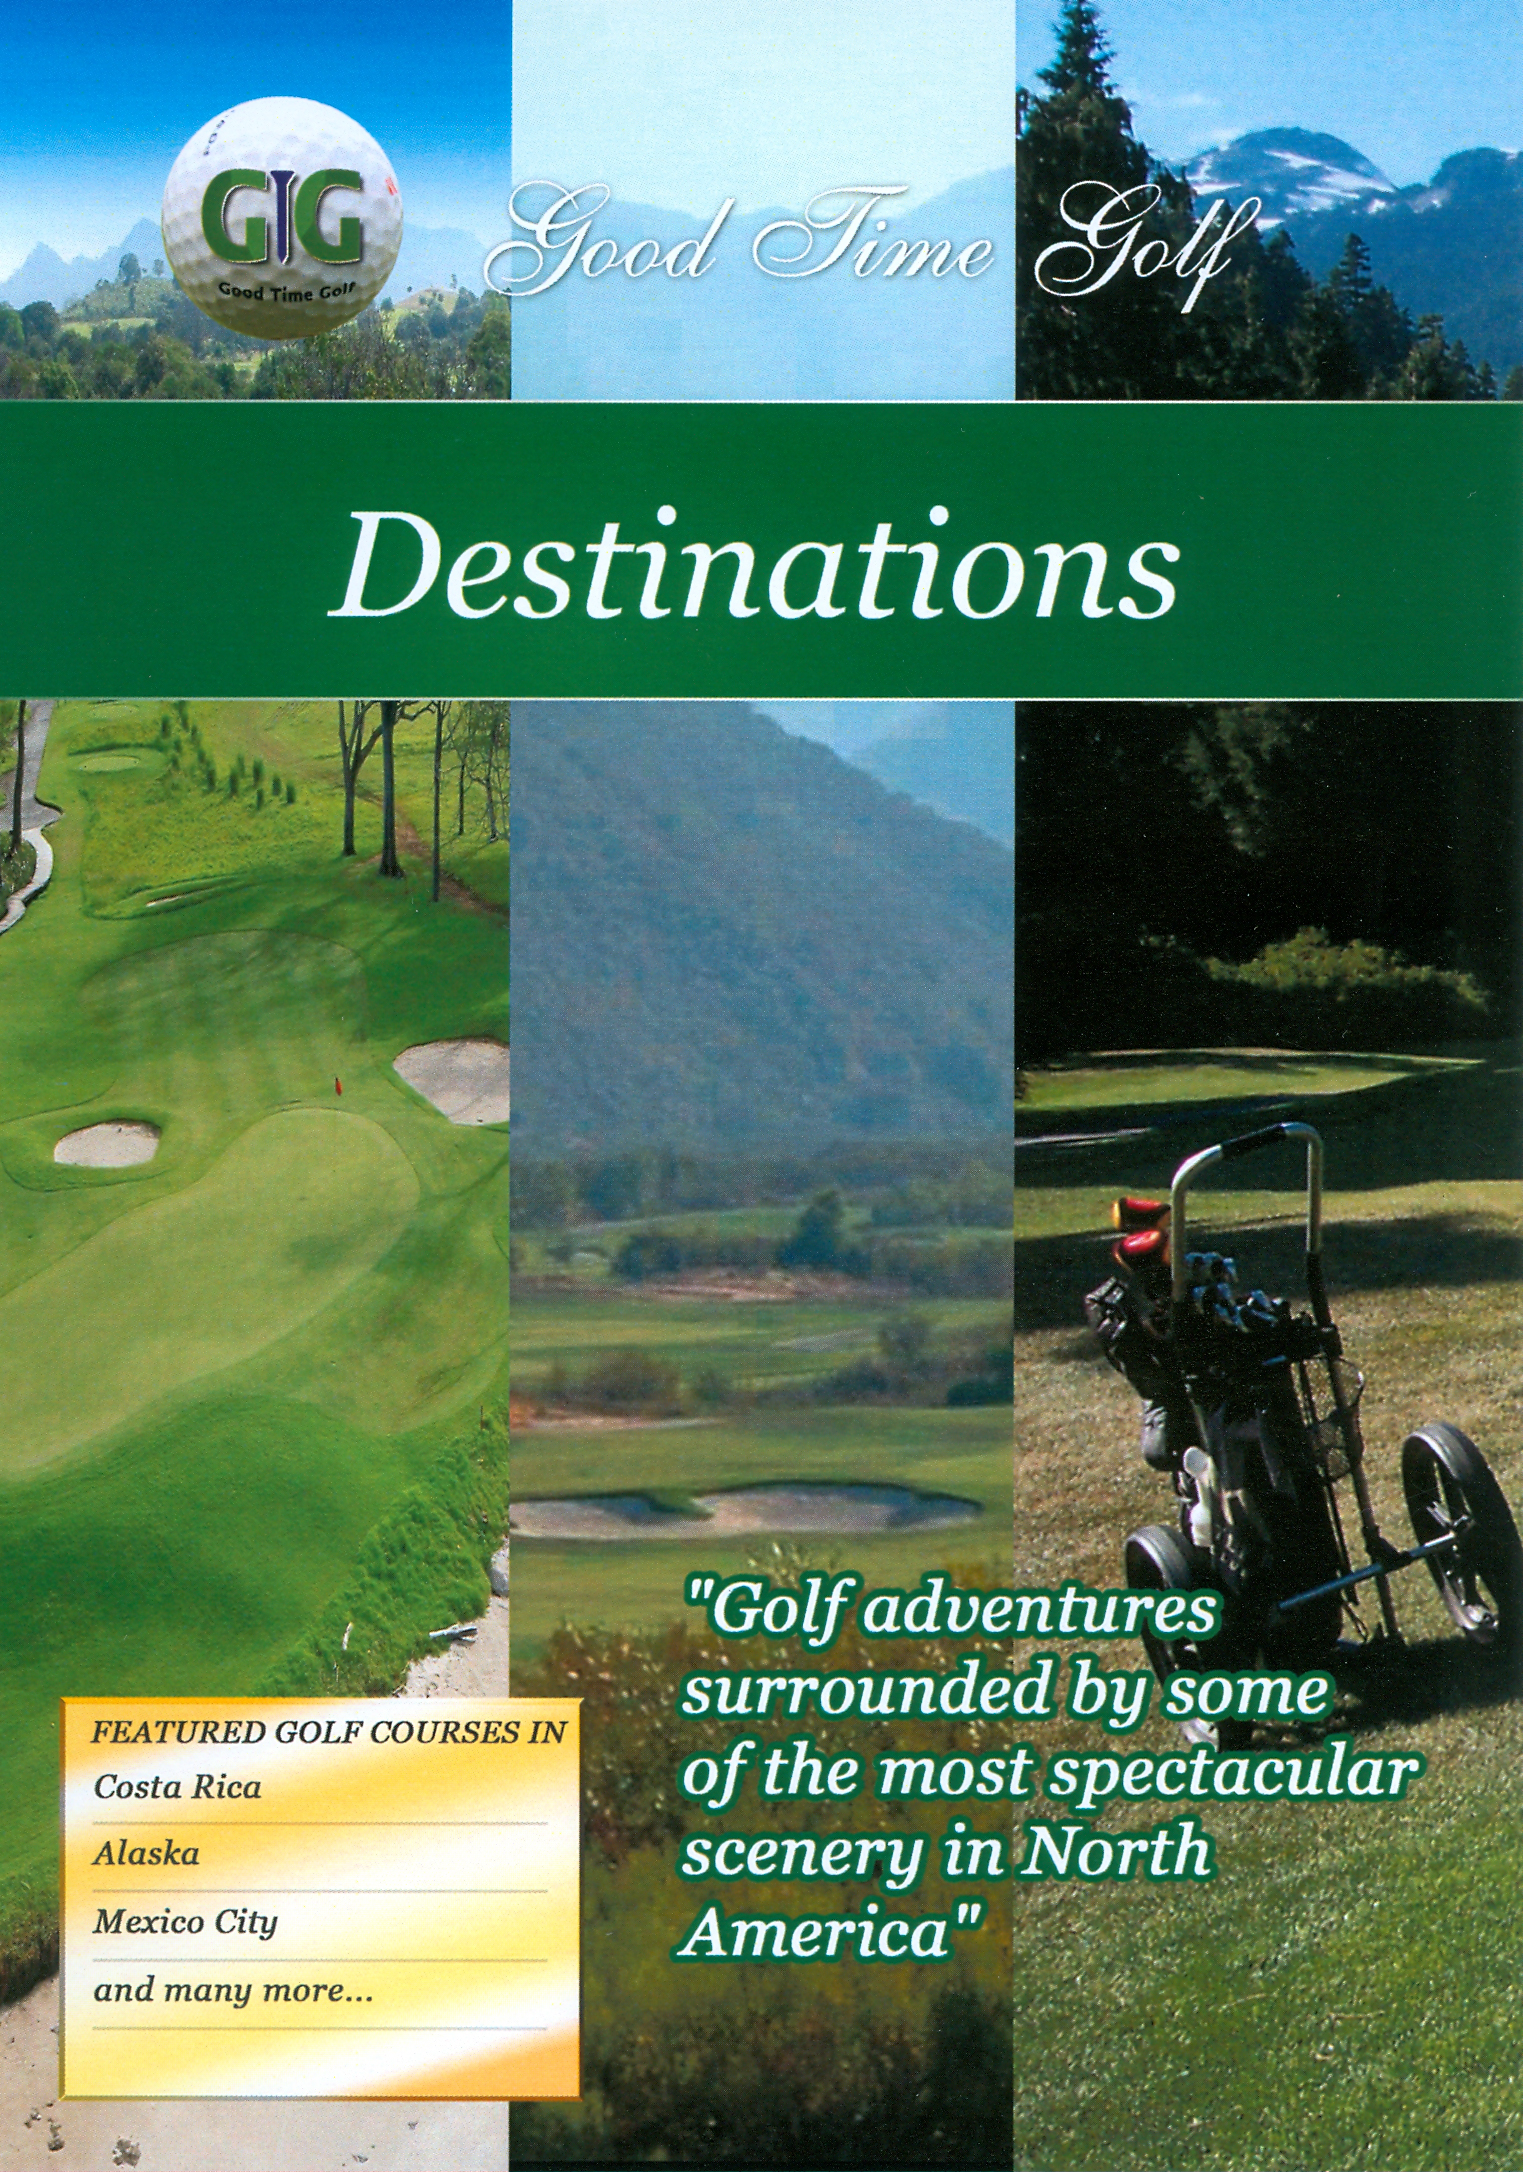 Good Time Golf: Destinations